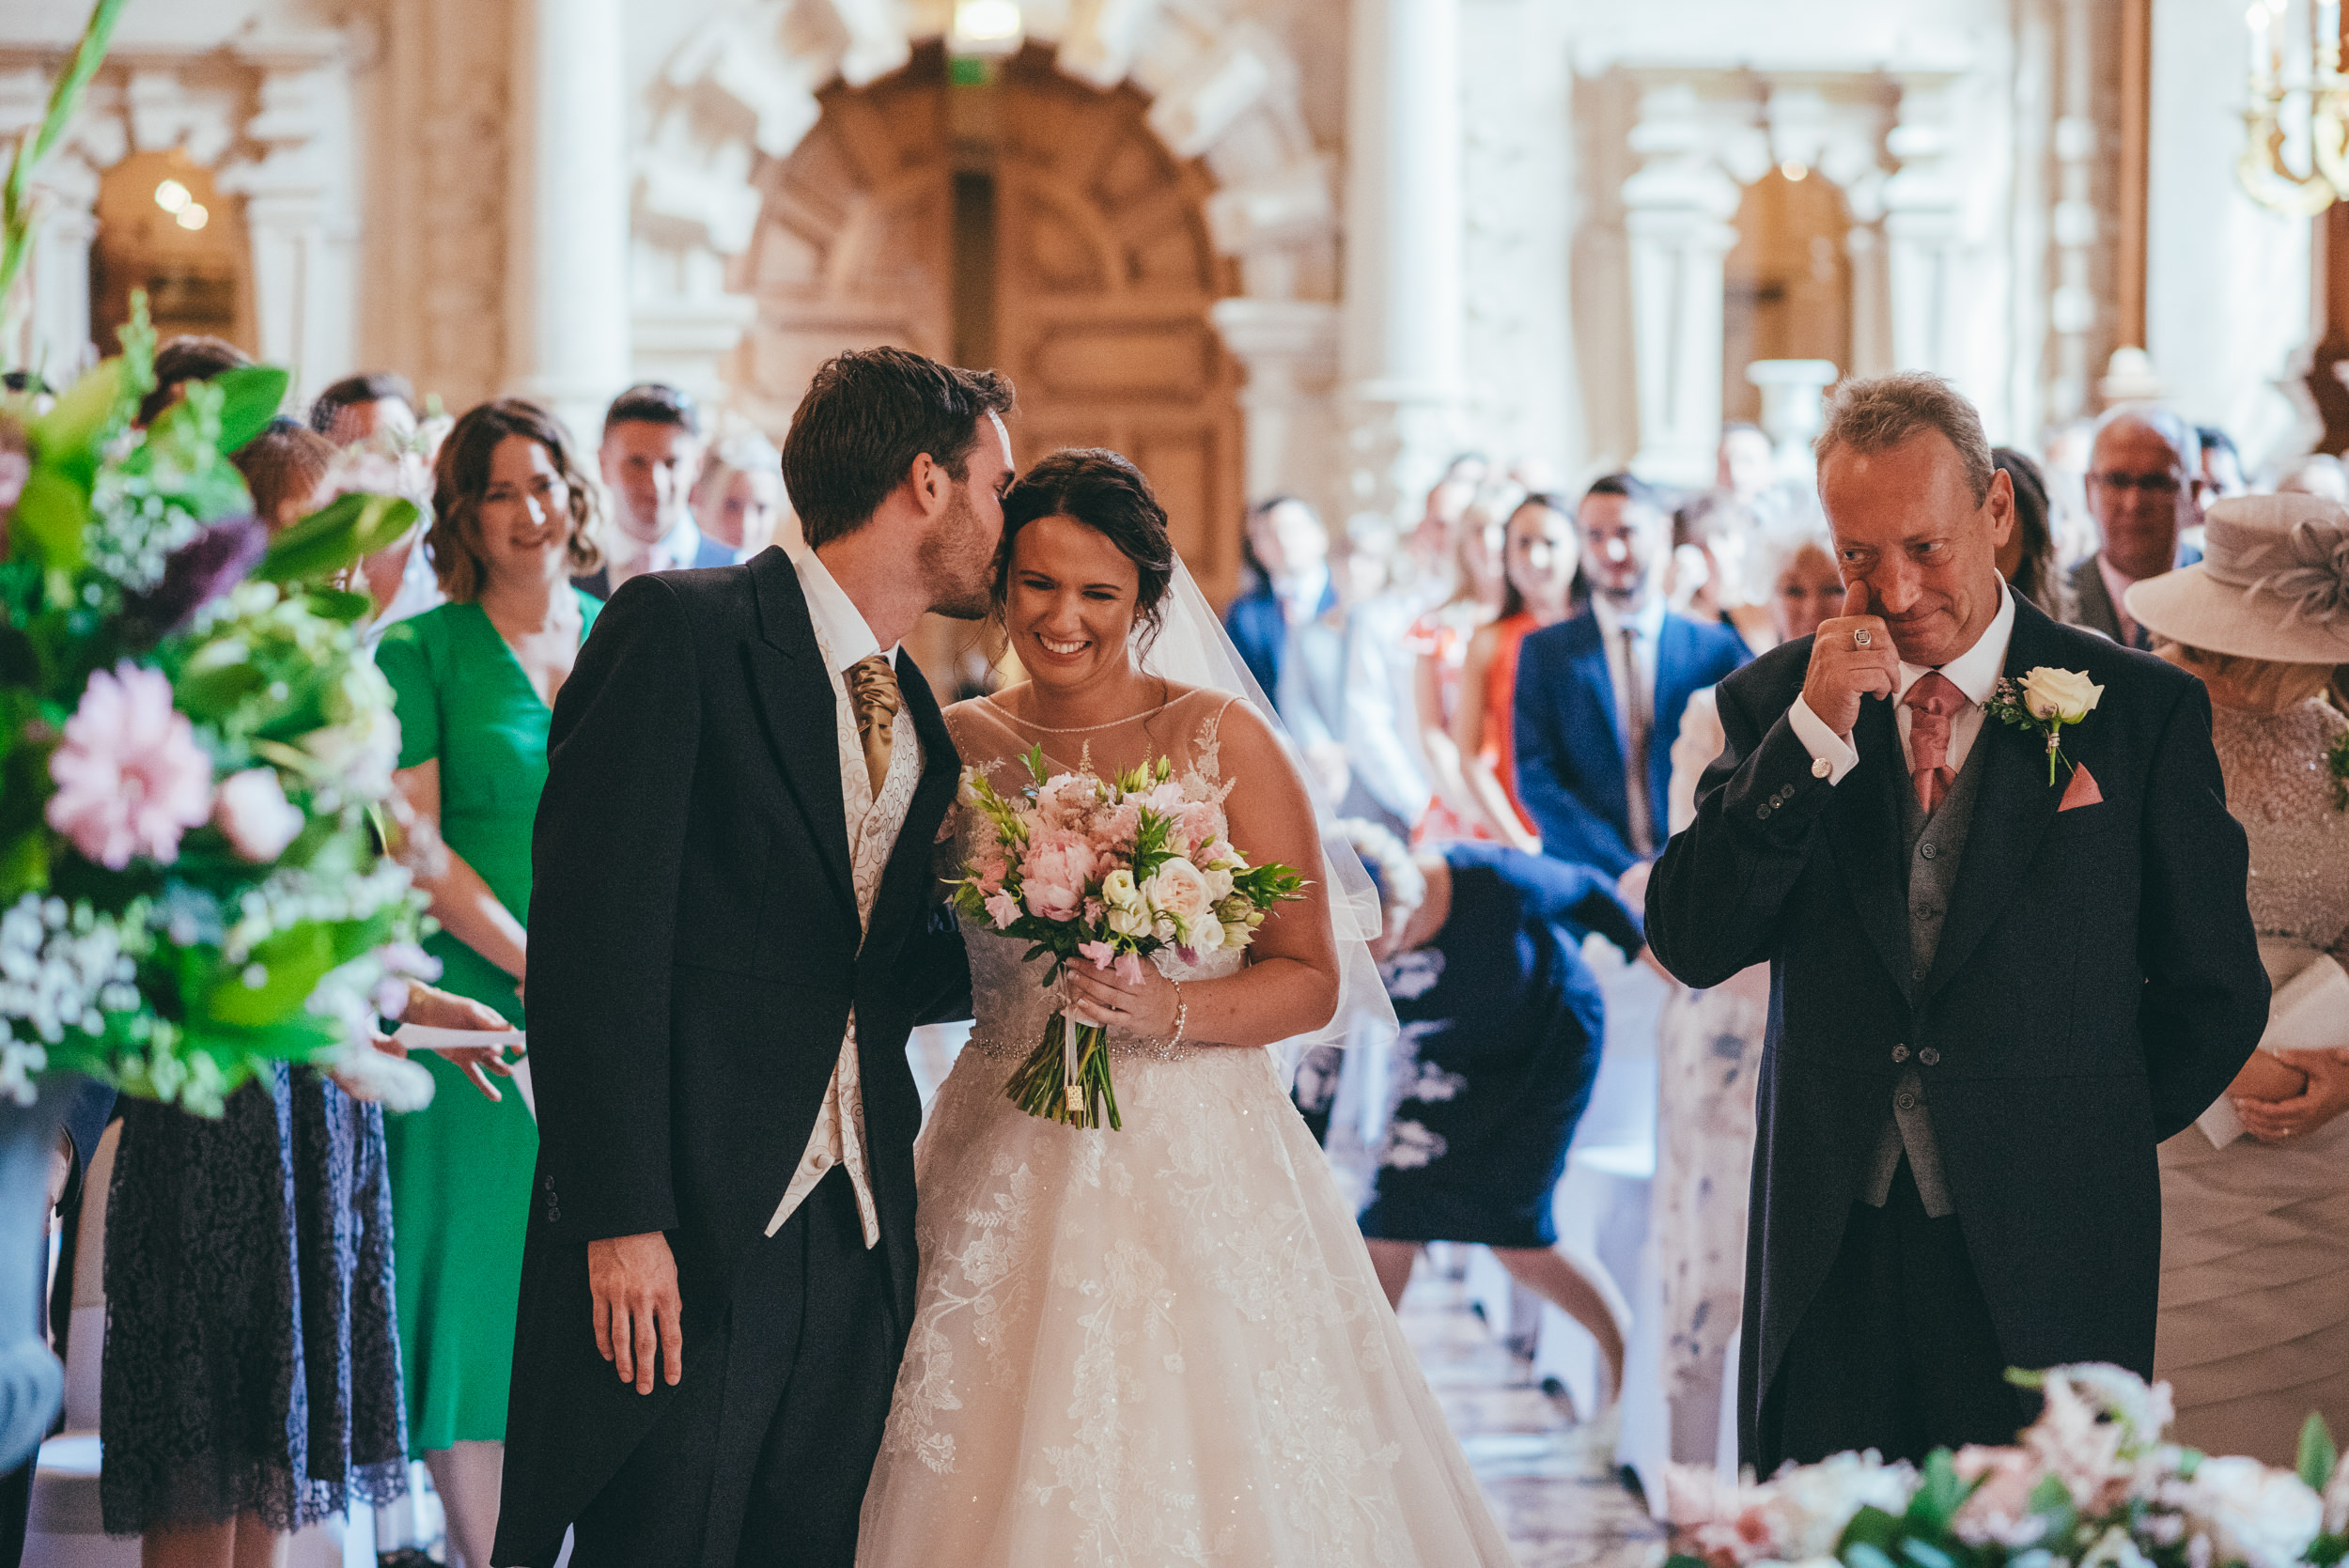 Groom kisses bride on the cheek at Harlaxton Manor